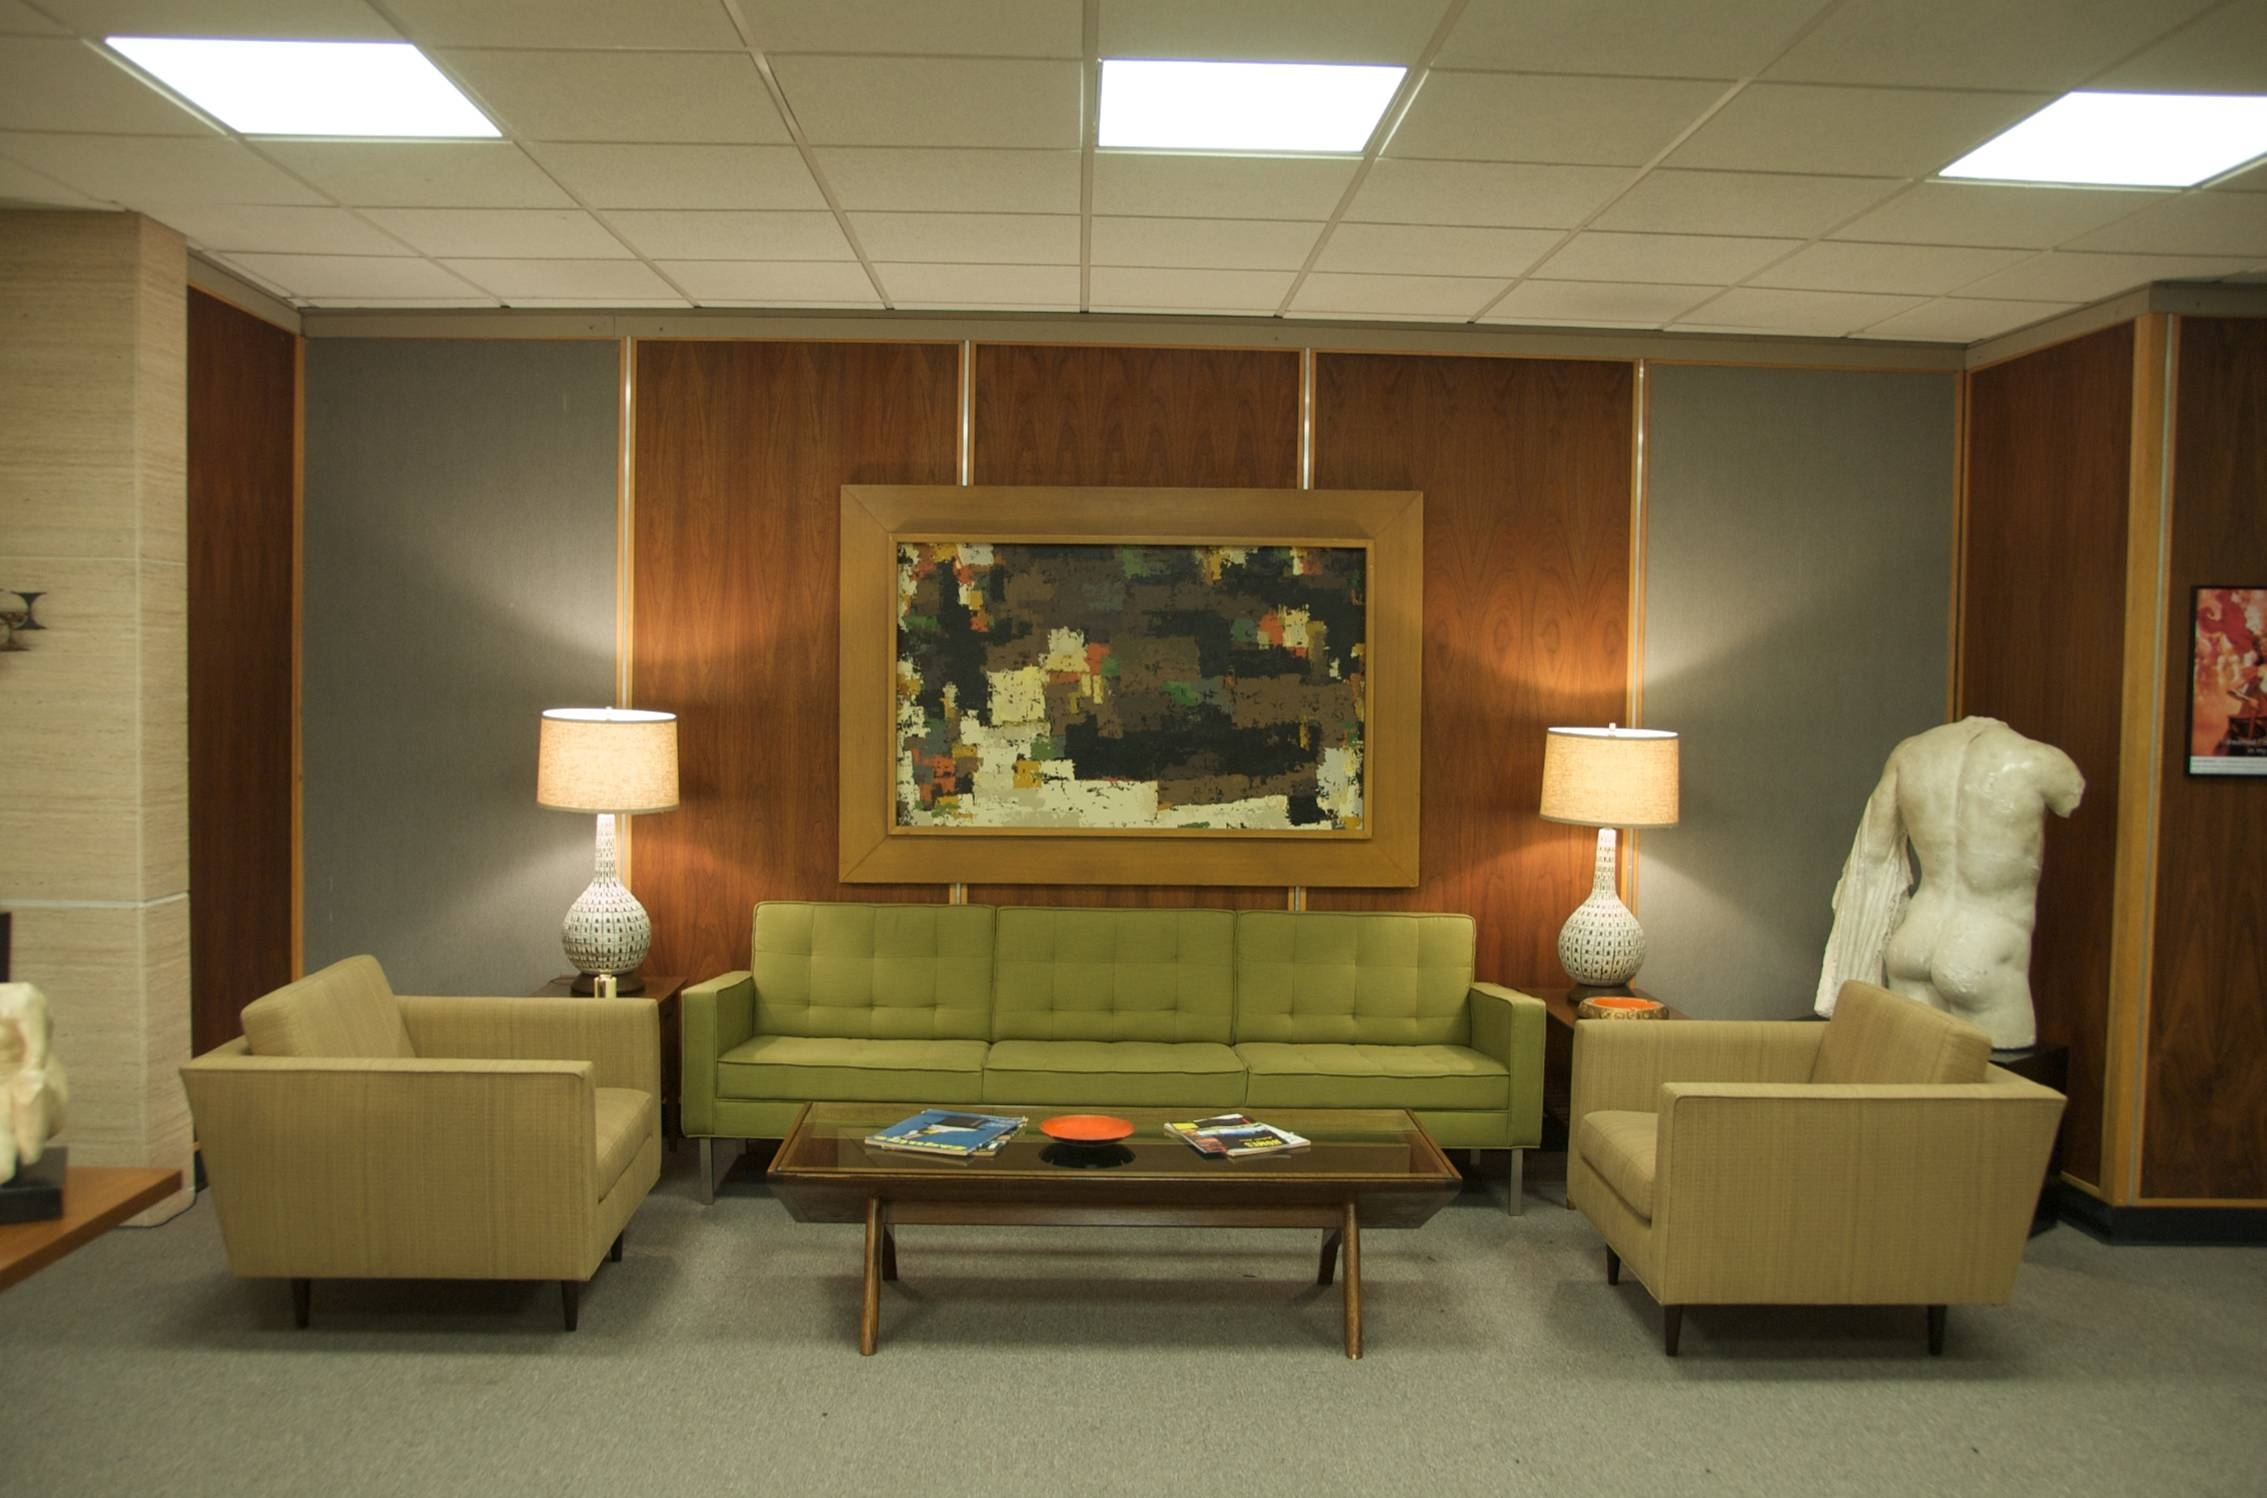 All The Best Interiors From Mad Men Sets MyDomaine